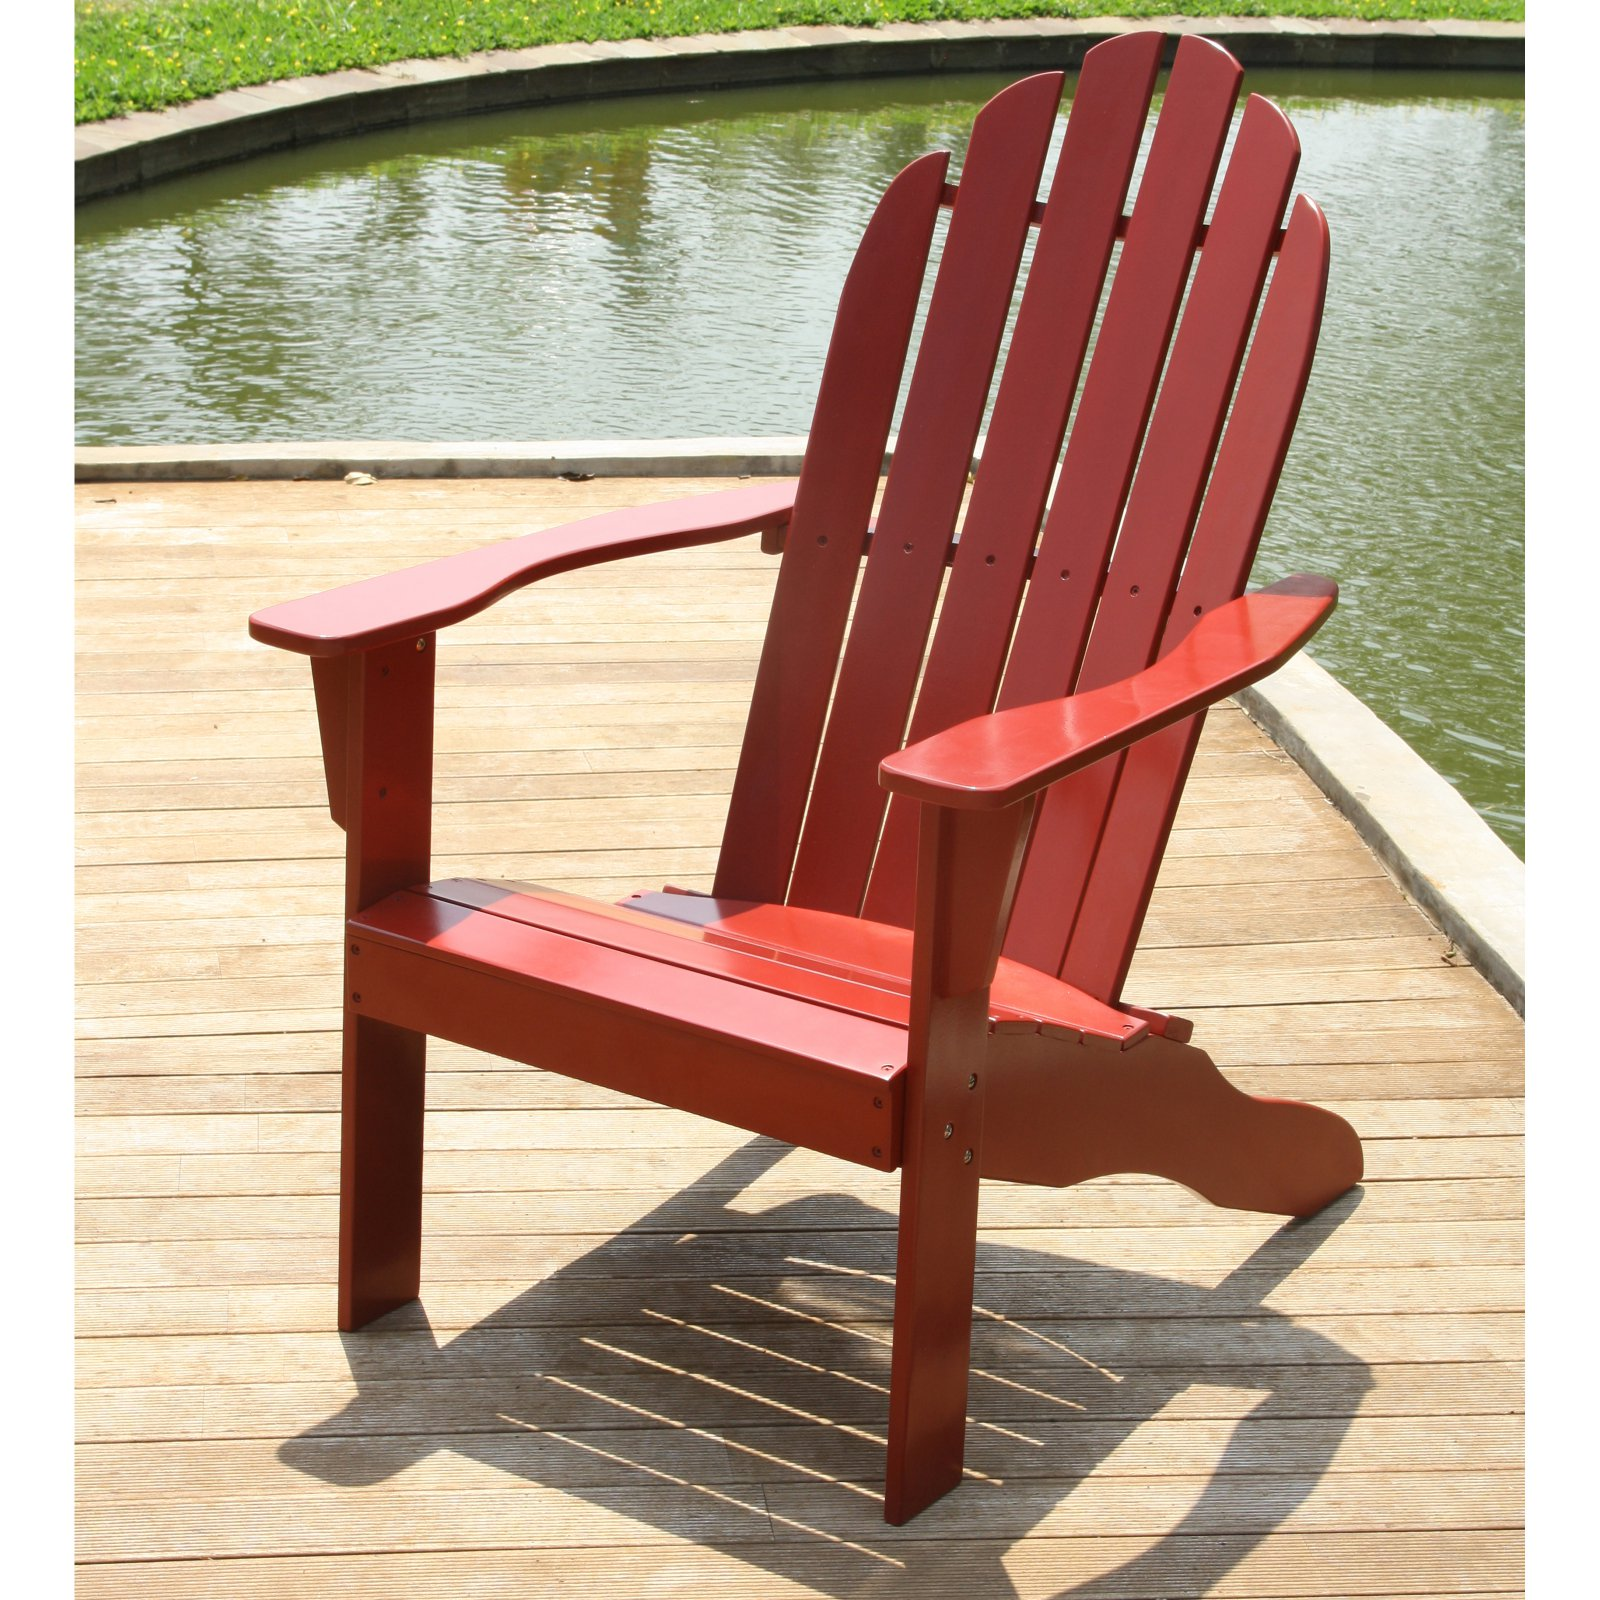 Cambridge Casual Wood Adirondack Chair by Fullrich Industries Co